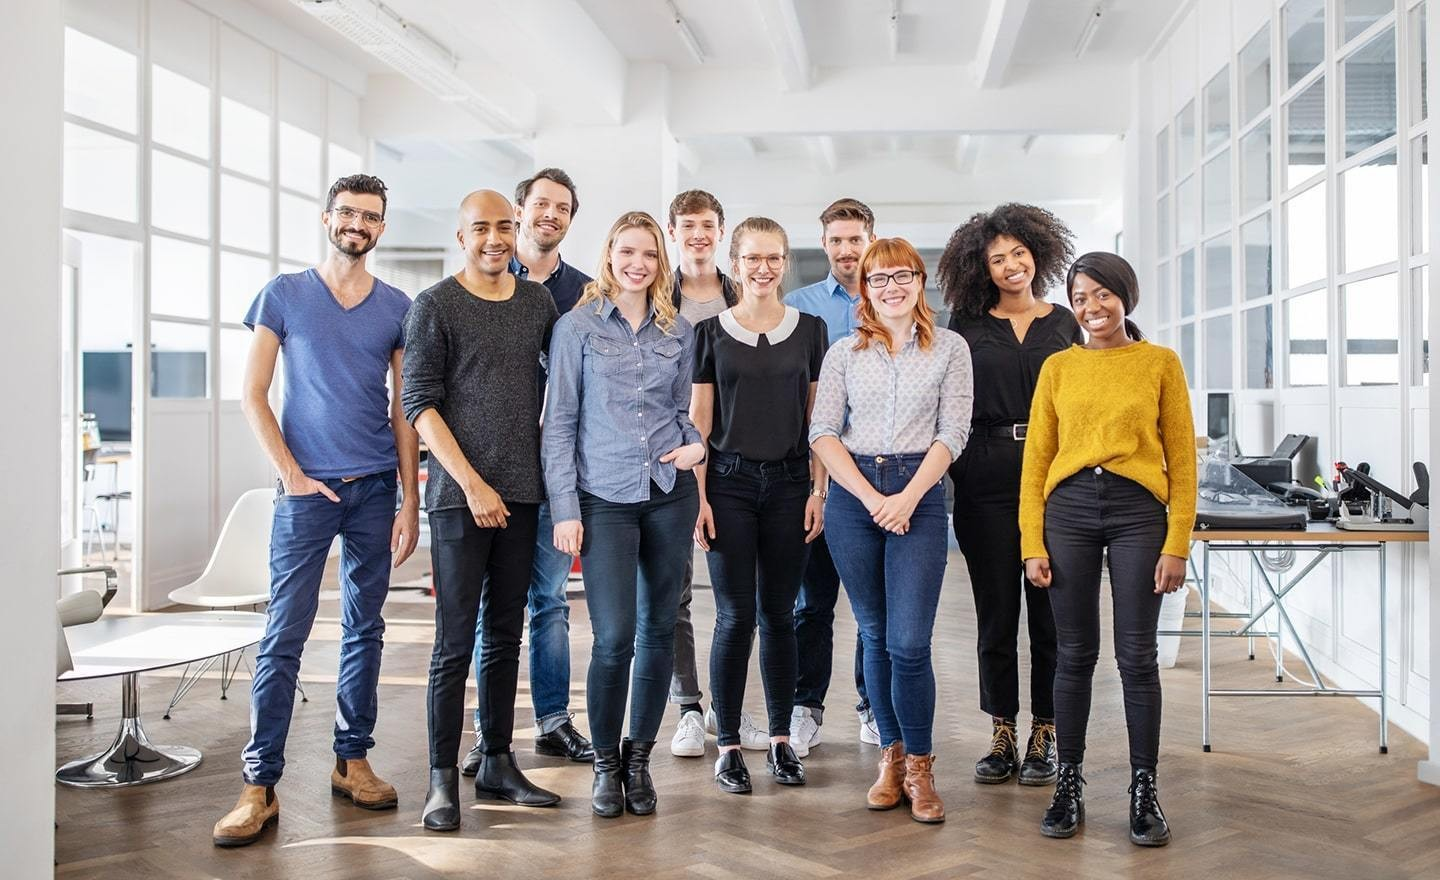 A group of employees in an office space